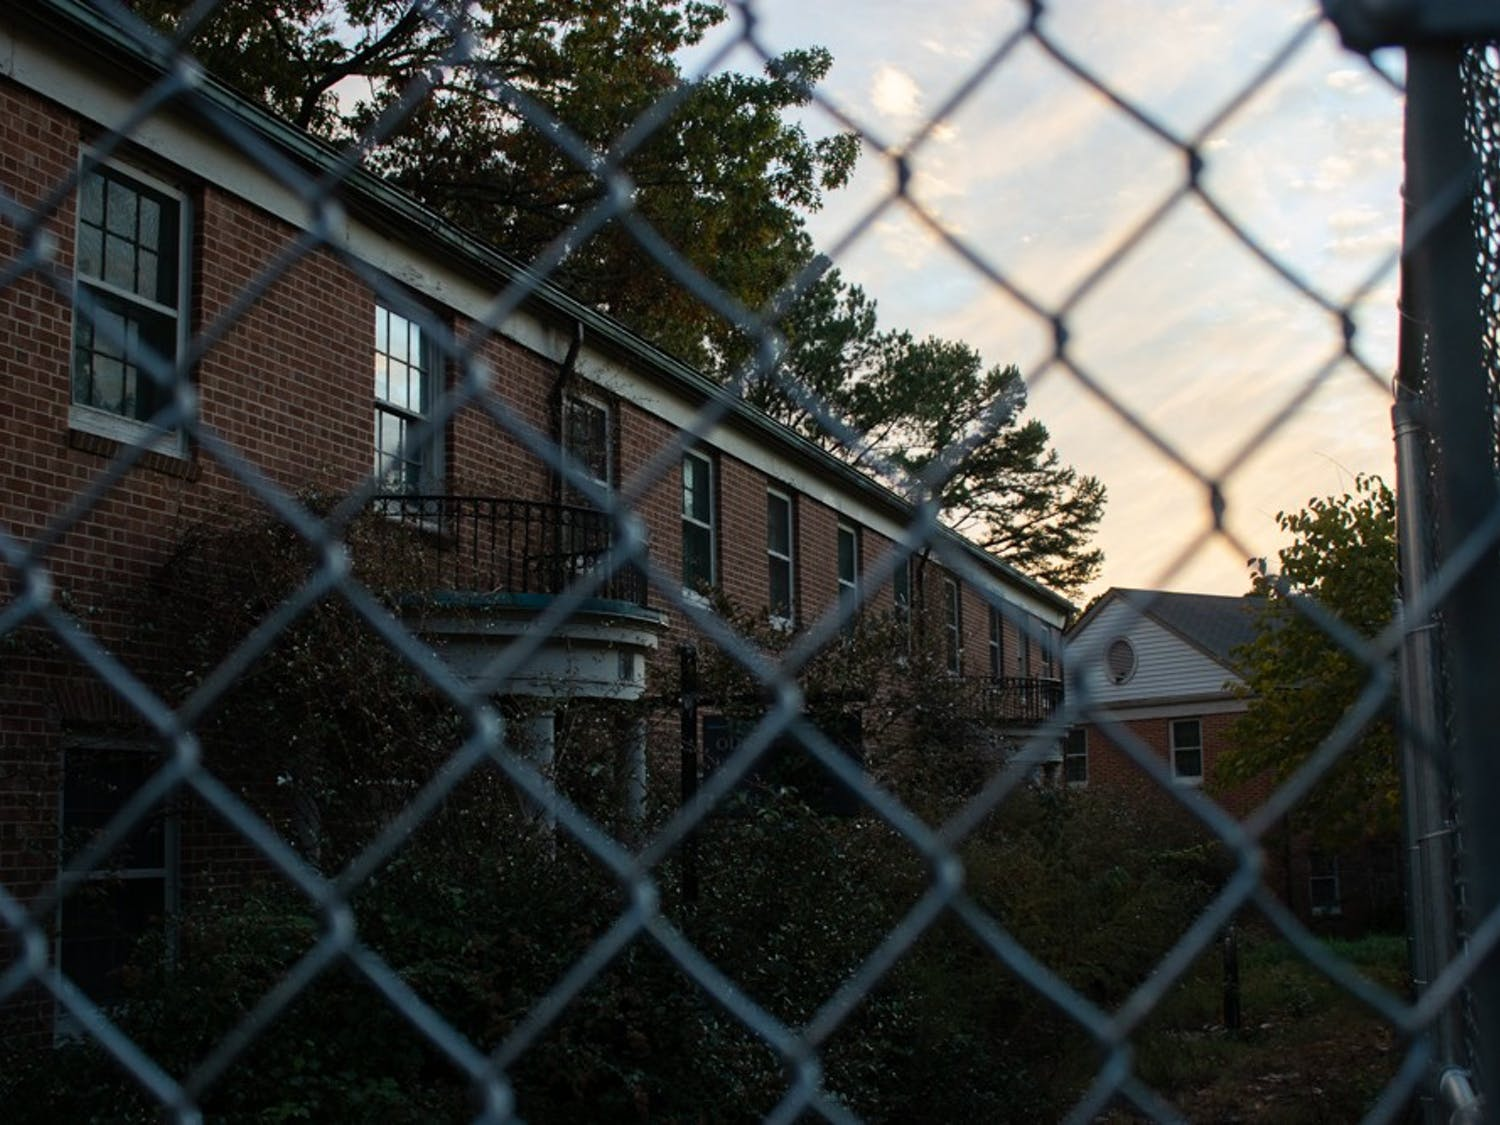 UNC makes plans to demolish Odum Village and build new property in its place due to its age and the expensive price of including new sprinkler systems.